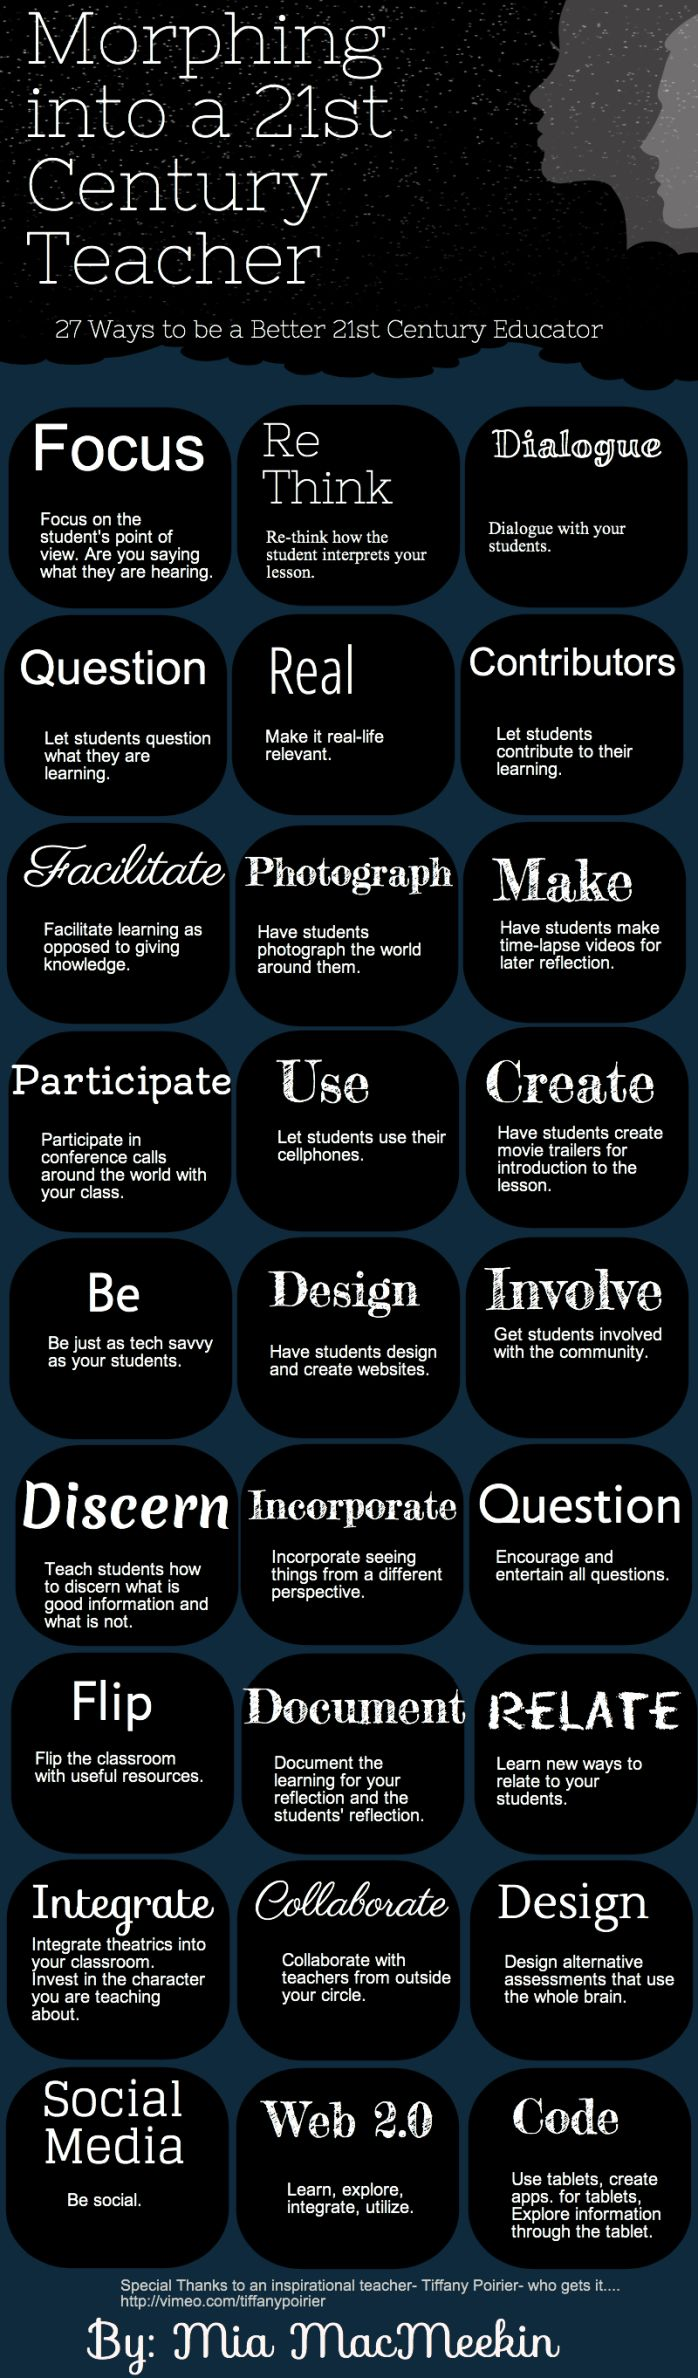 Morphing into a 21st Century Educator